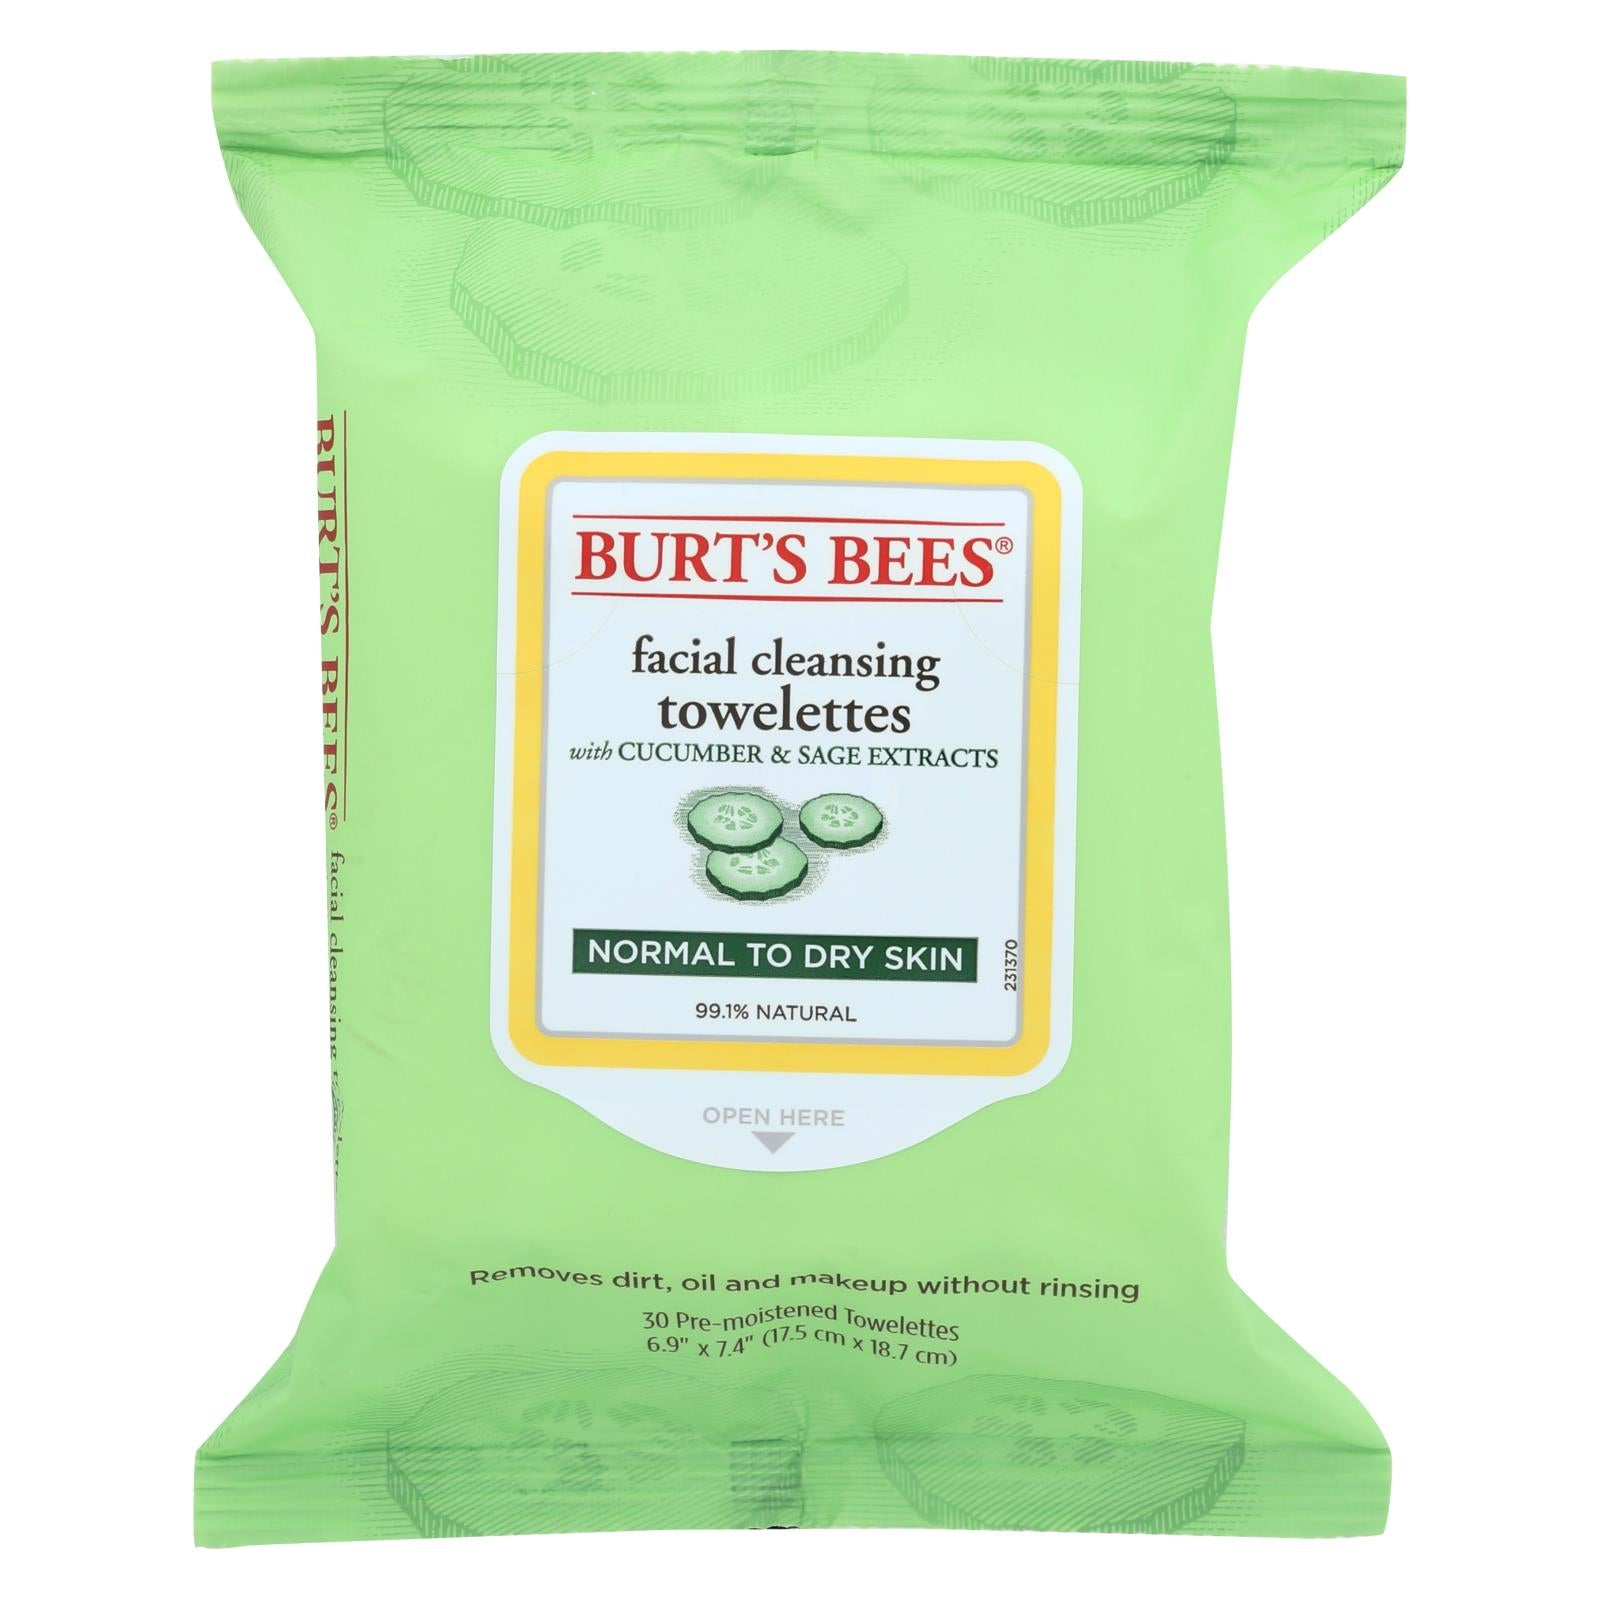 burts bees case Read our case studies which feature the challenges our customers have overcome and the strategic wins they have scored using solys burt's bees needed to streamline reporting and analysis in order to identify insights and communicate action plans.